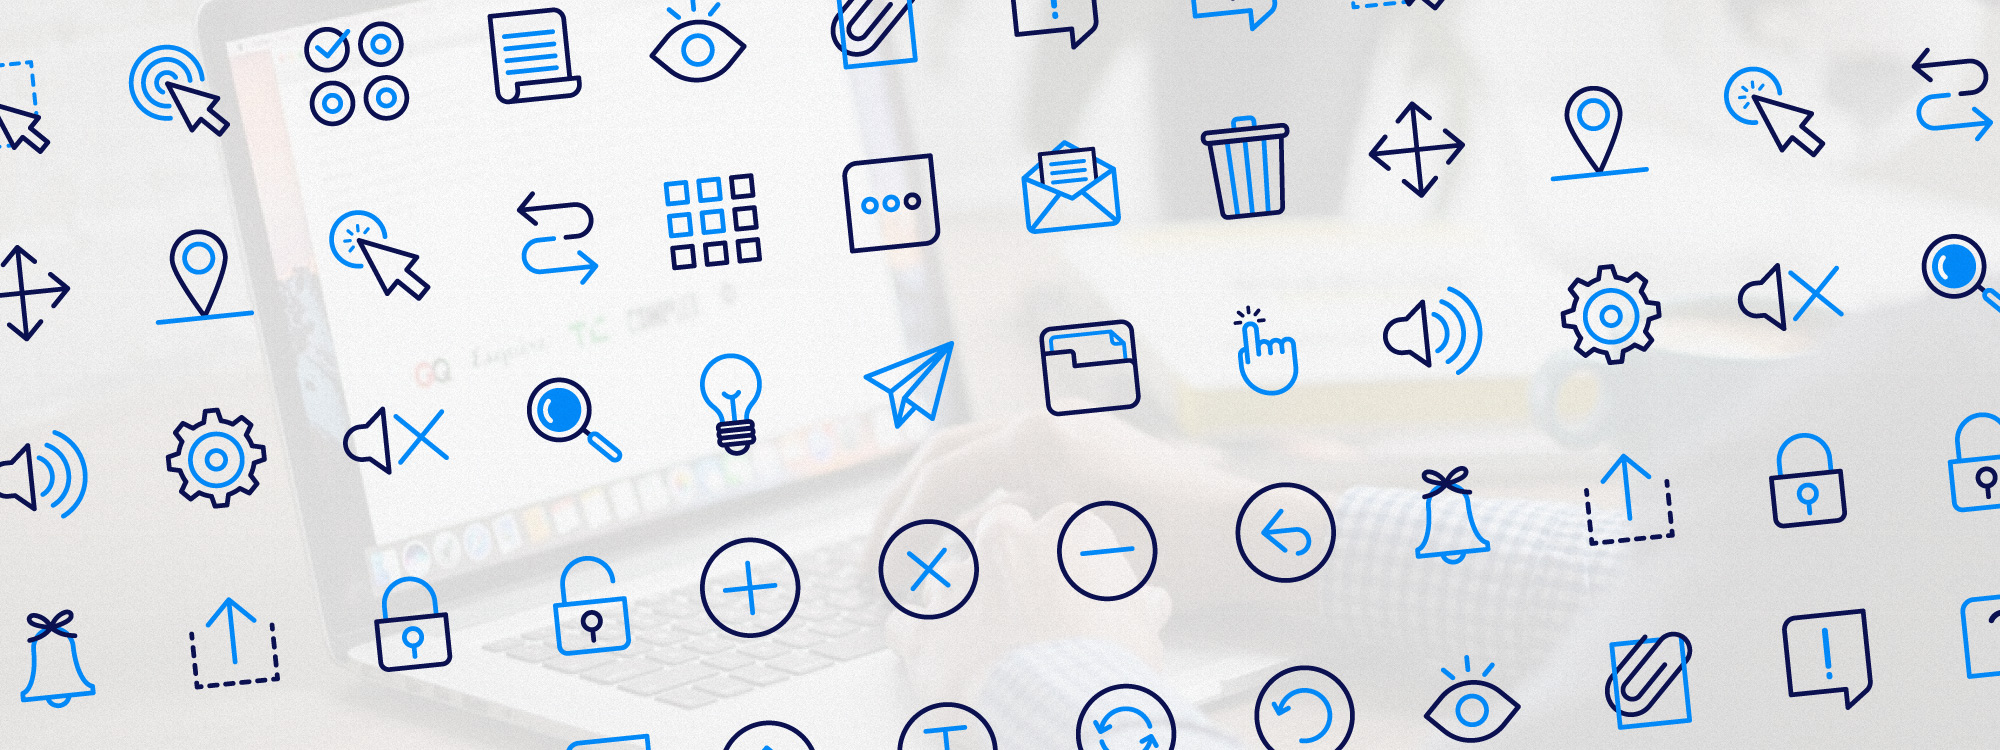 50 free UX/UI icons that'll save you time on your next project